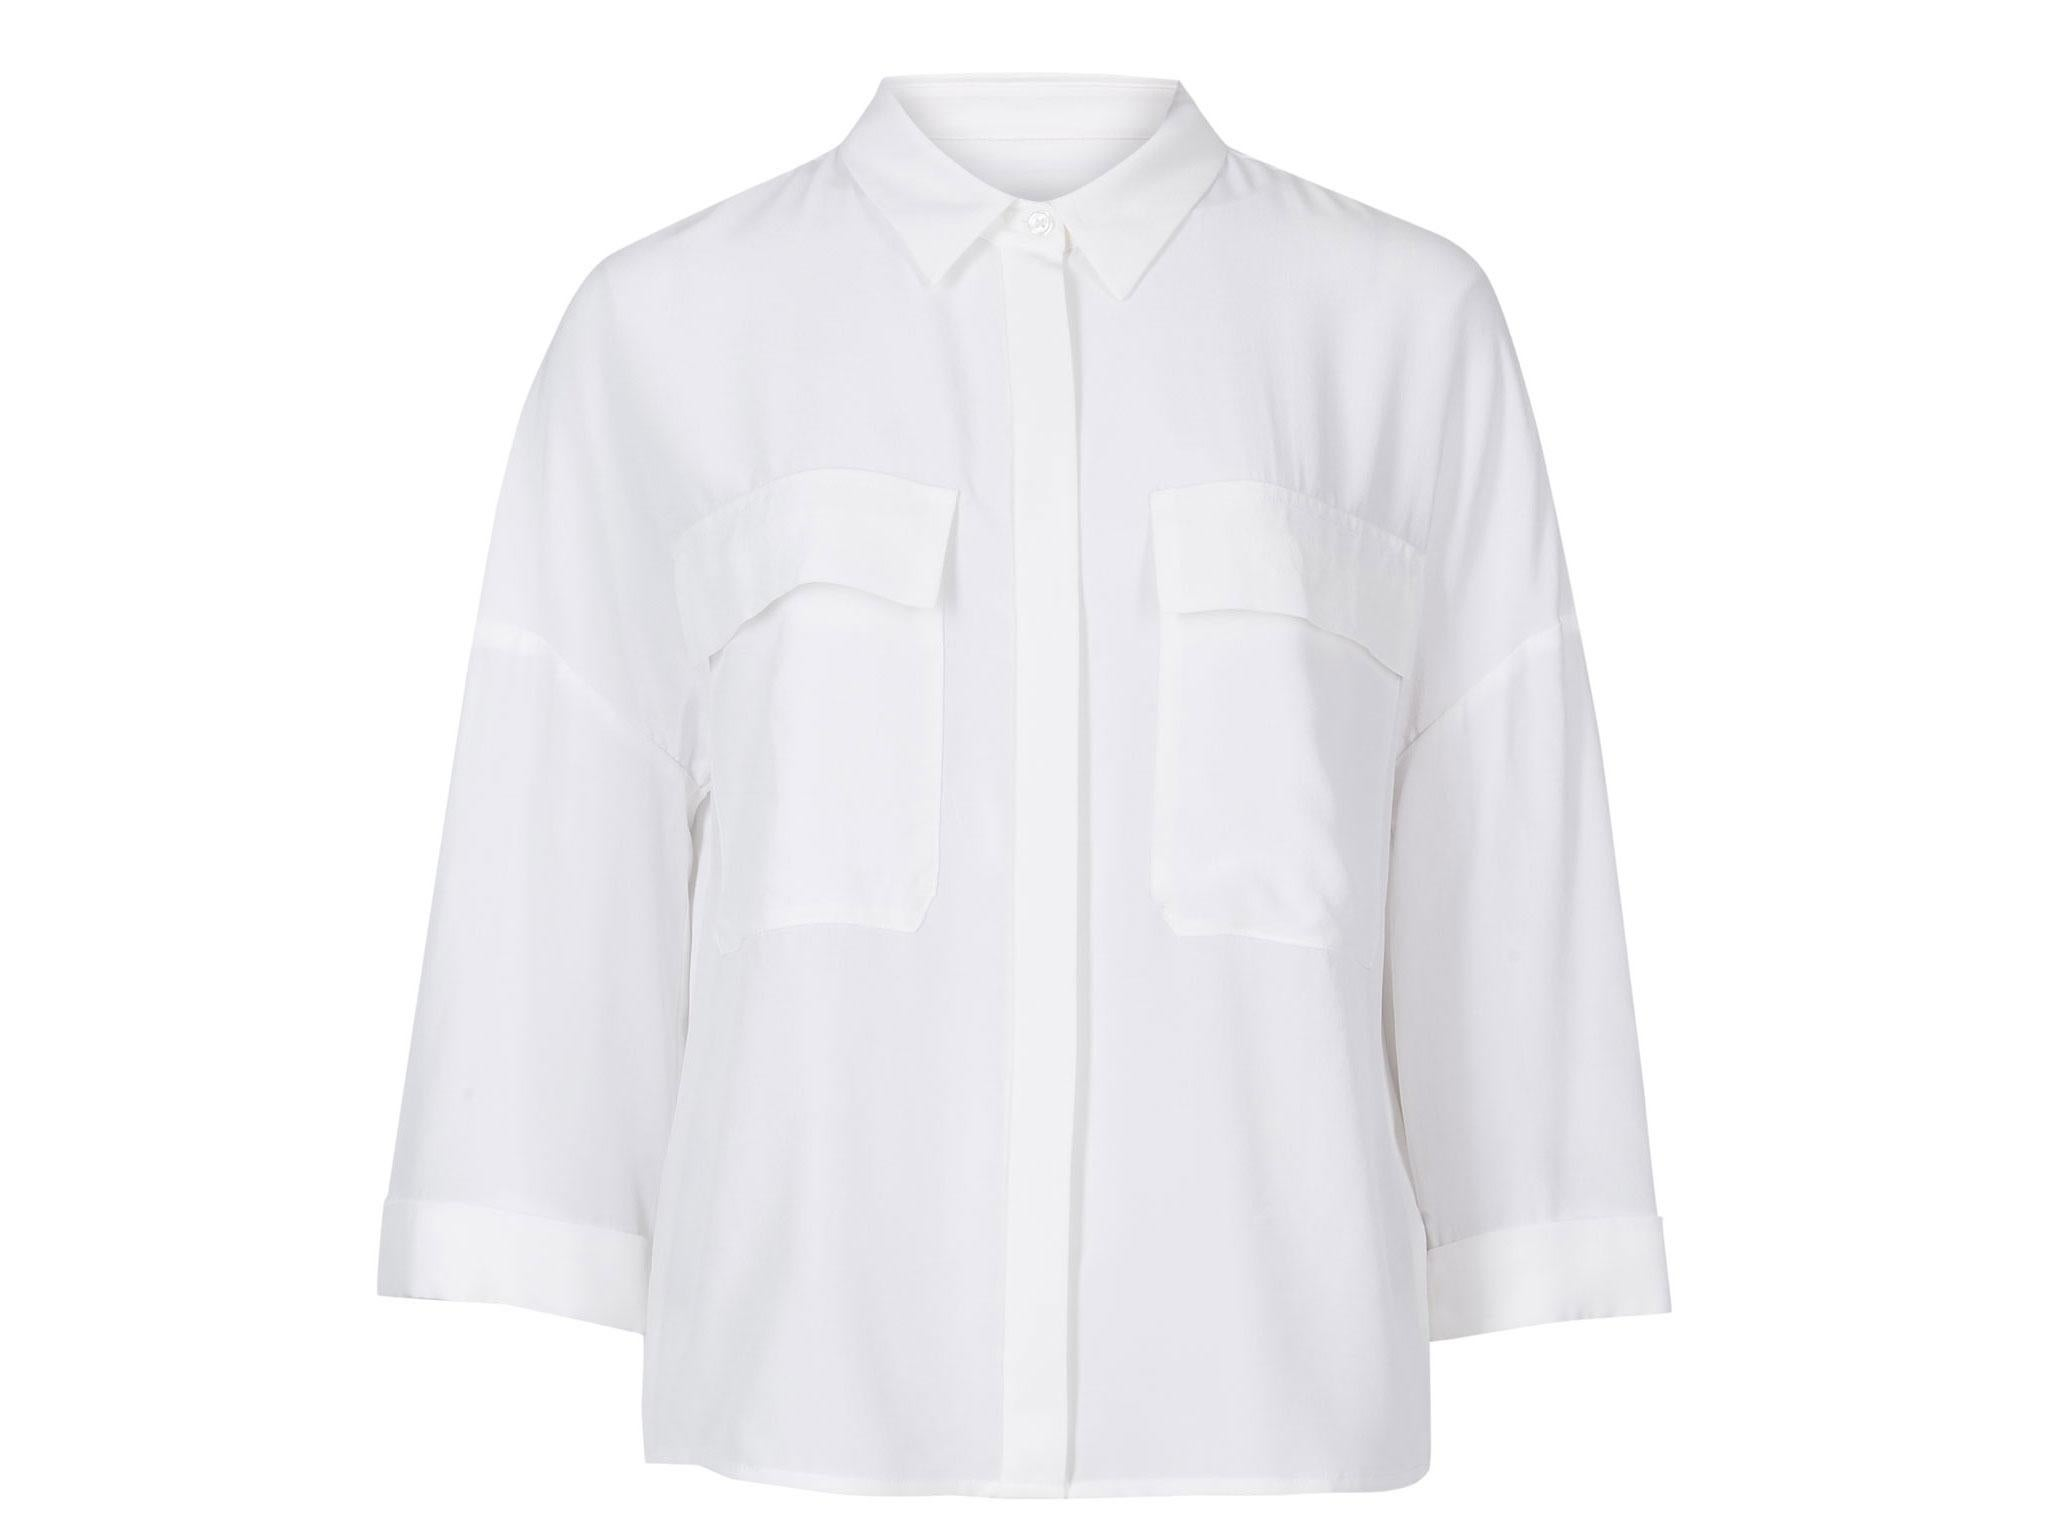 7 Best White Shirts For Women The Independent